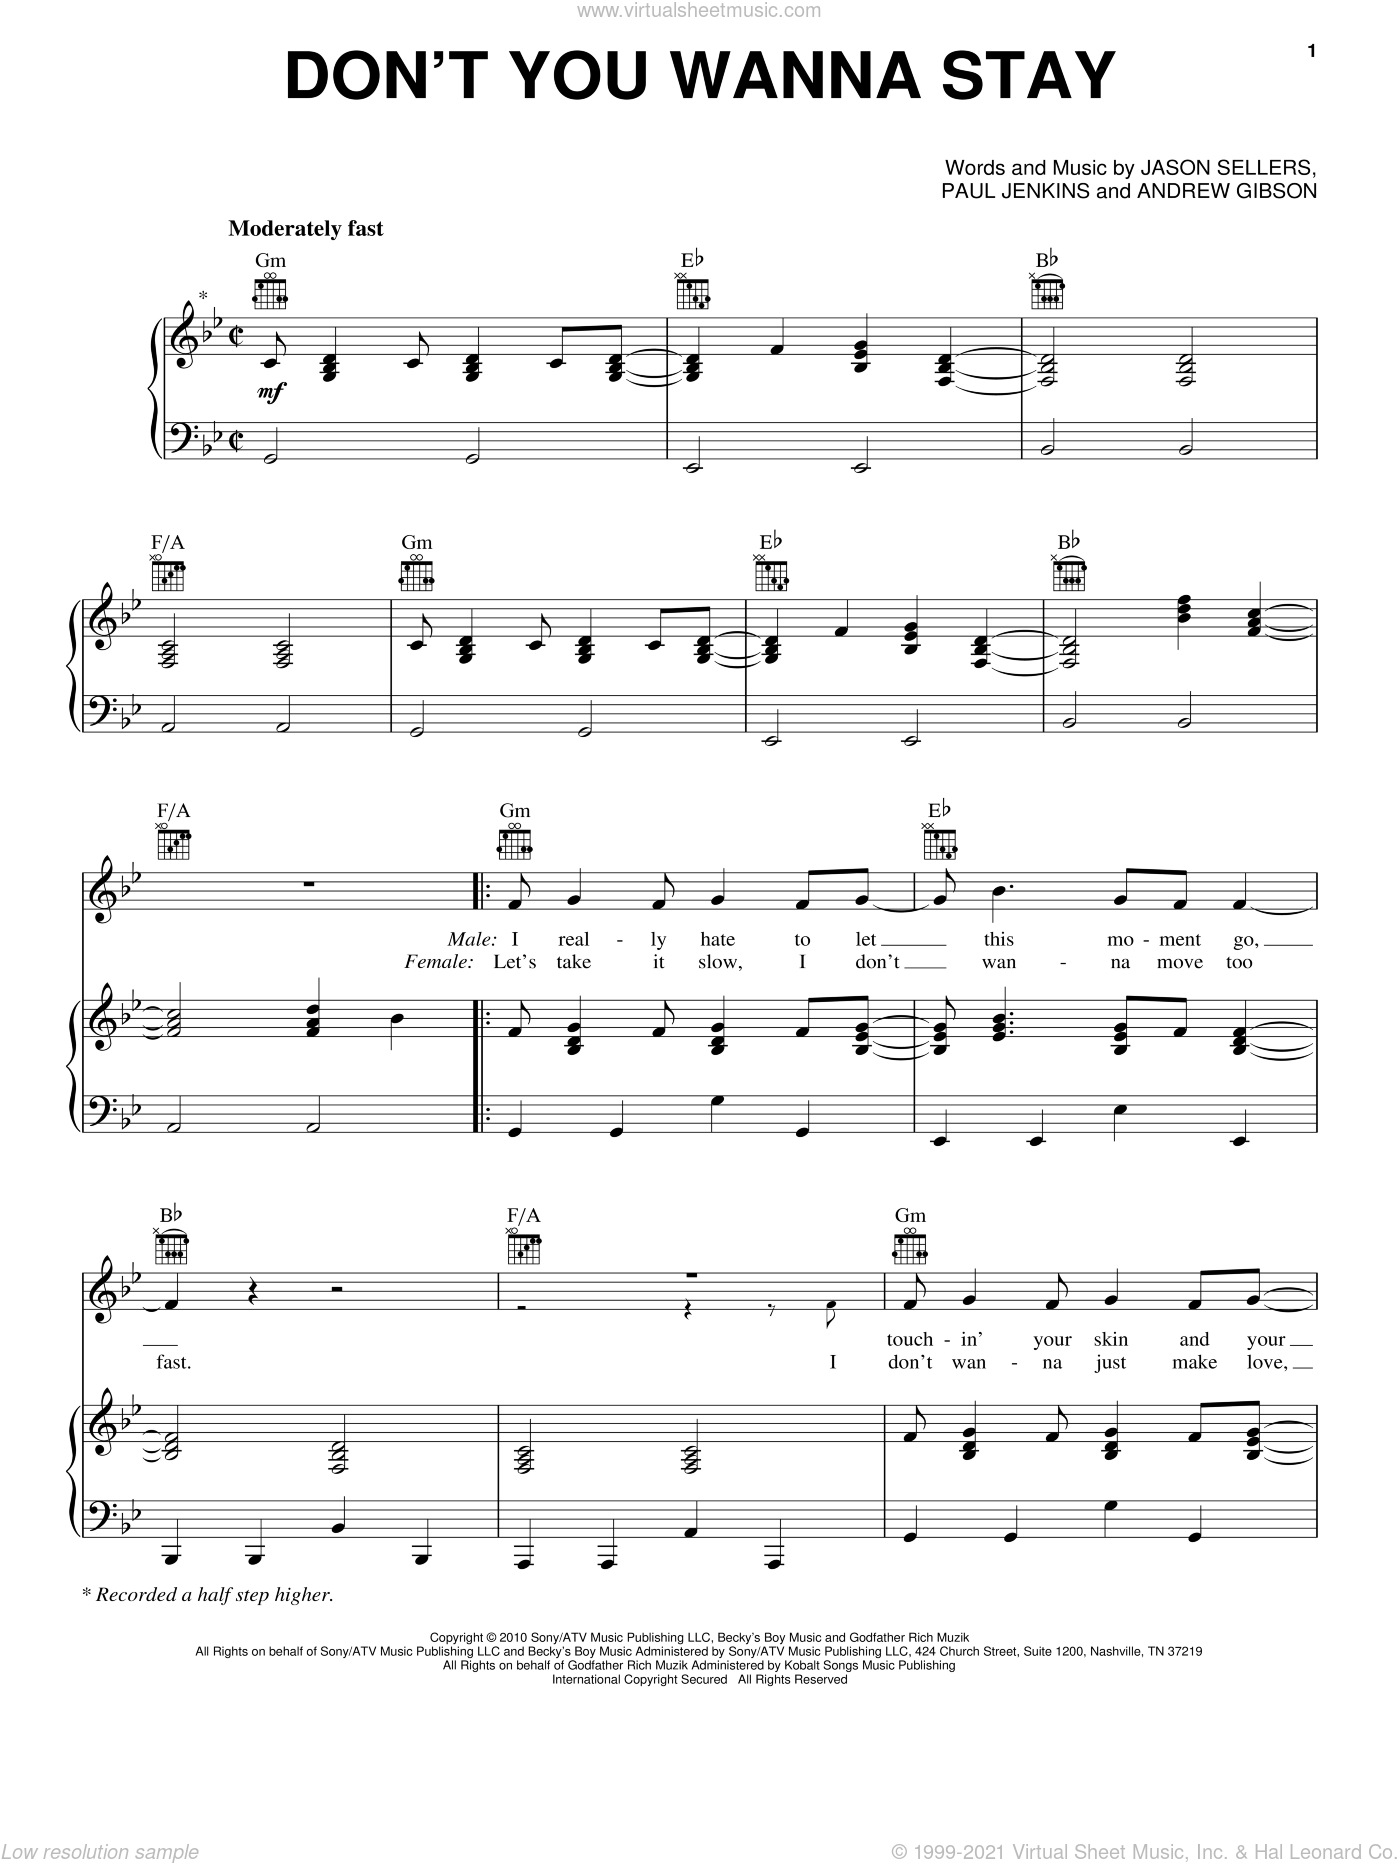 Don't You Wanna Stay sheet music for voice, piano or guitar by Jason Aldean featuring Kelly Clarkson, Jason Aldean, Kelly Clarkson, Andy Gibson, Jason Sellers and Paul Jenkins, intermediate skill level